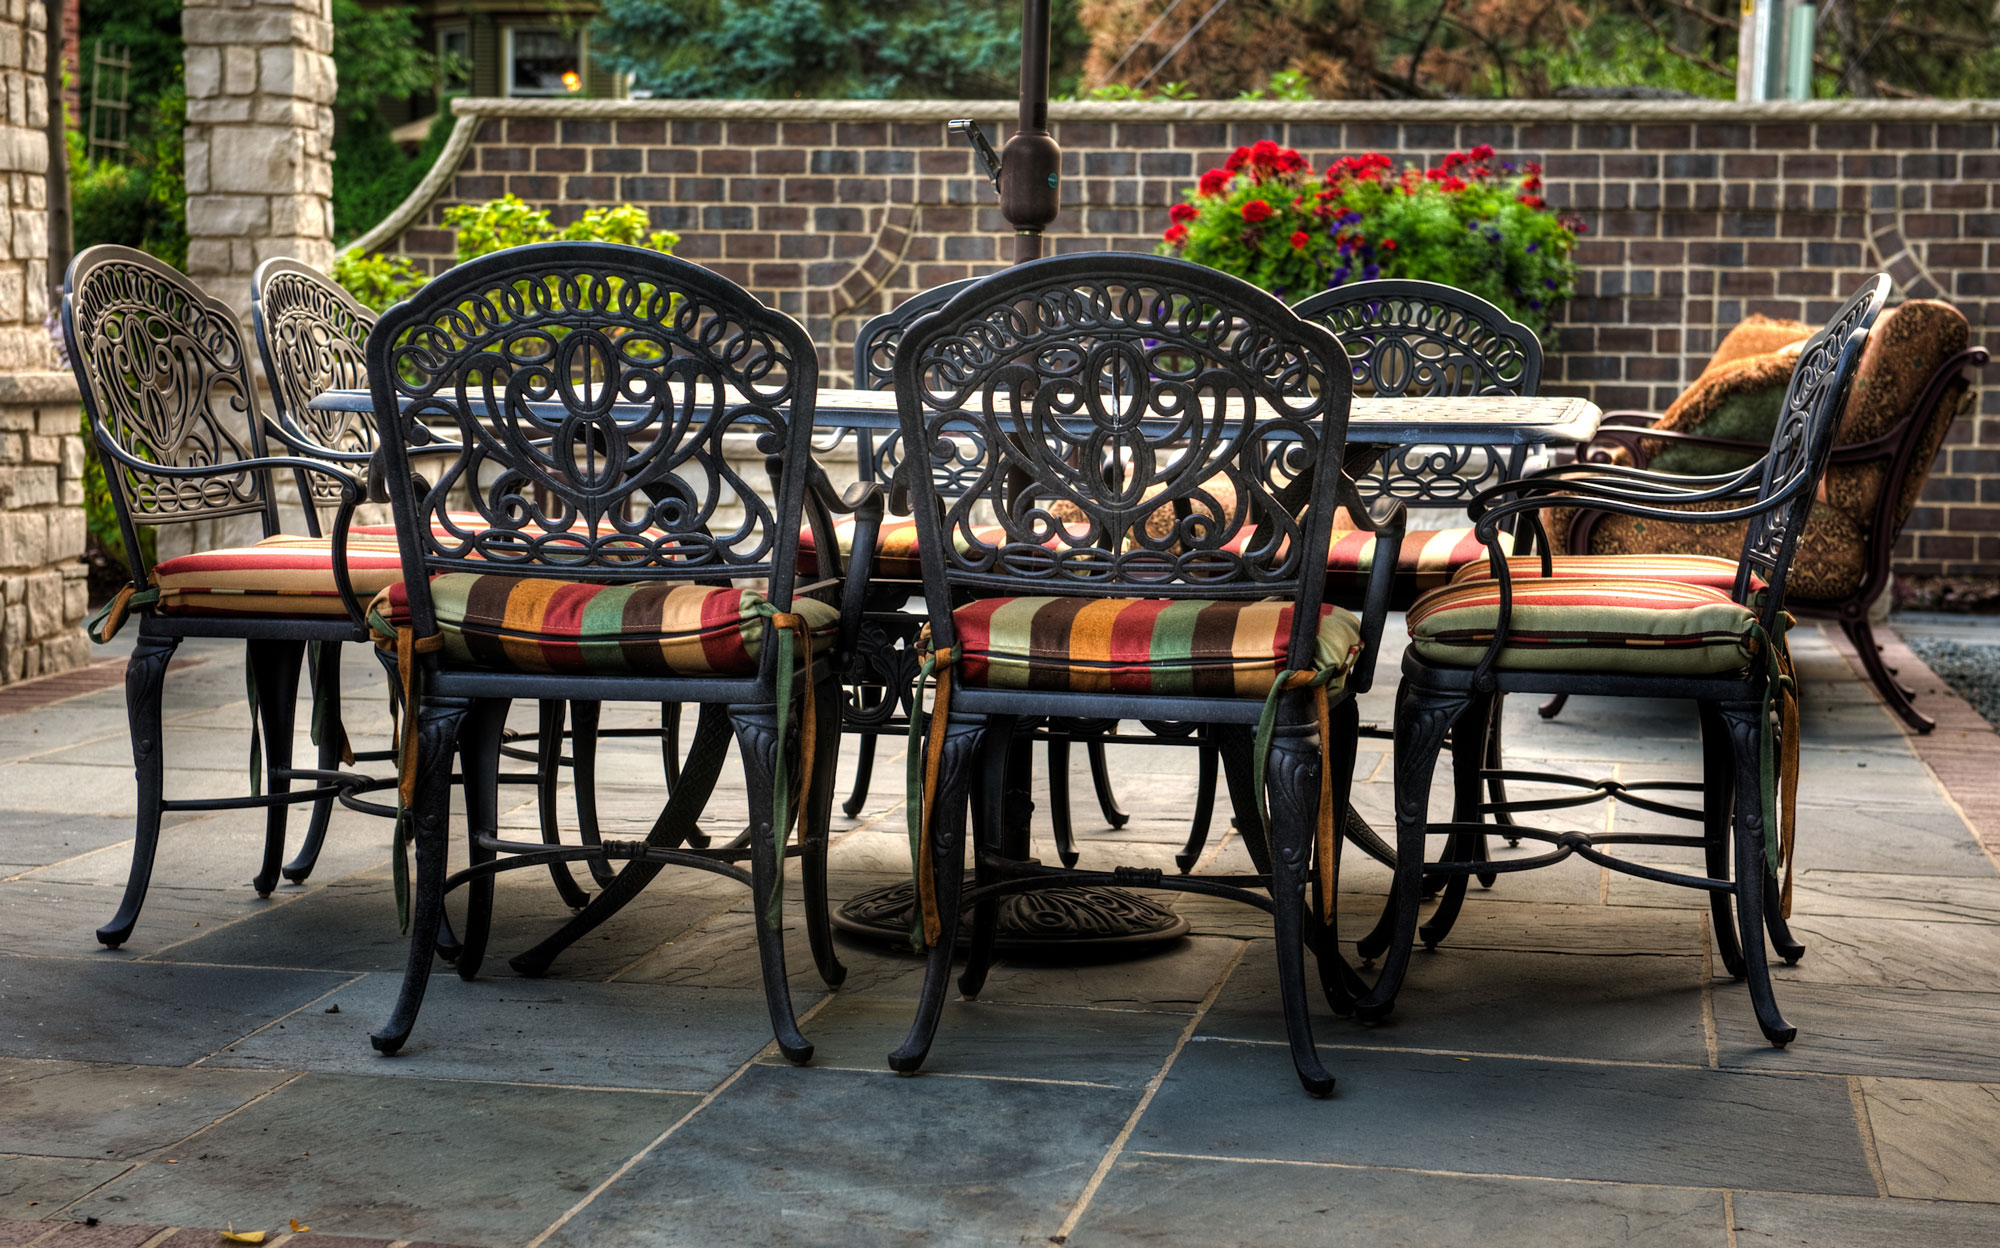 Outdoor-Table-Chairs-2000x1.jpg